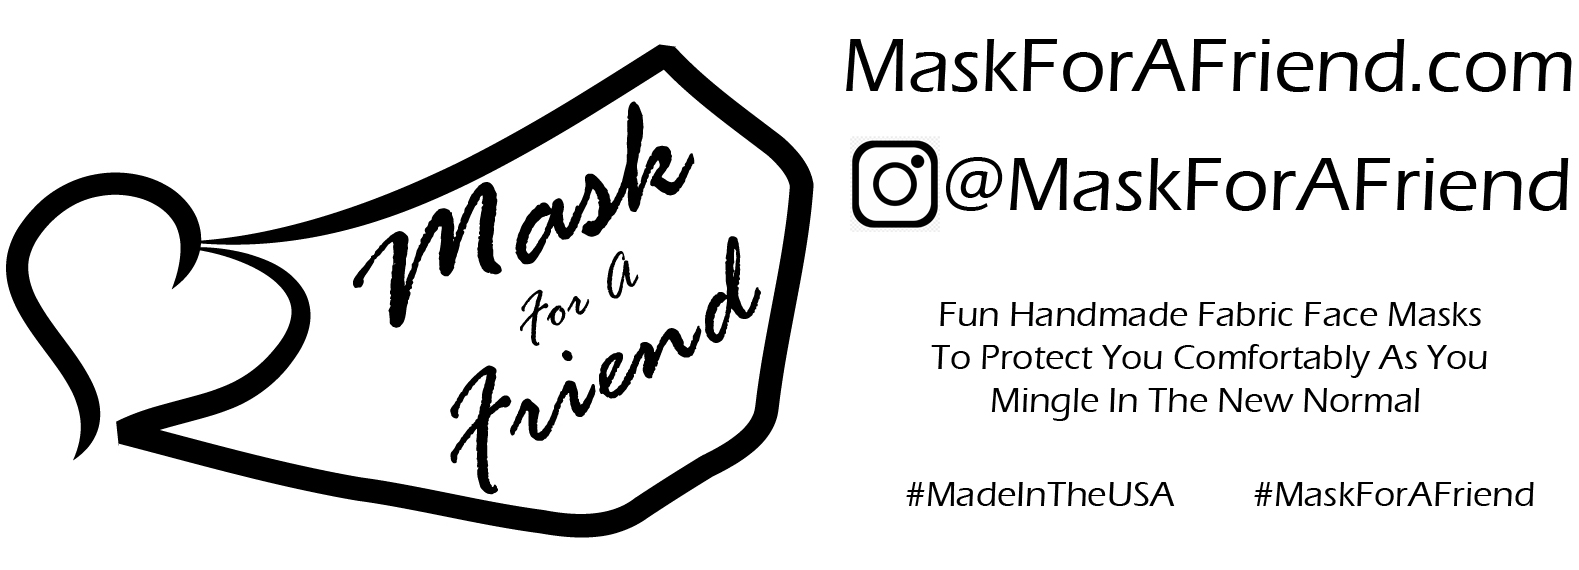 MaskForAFriend